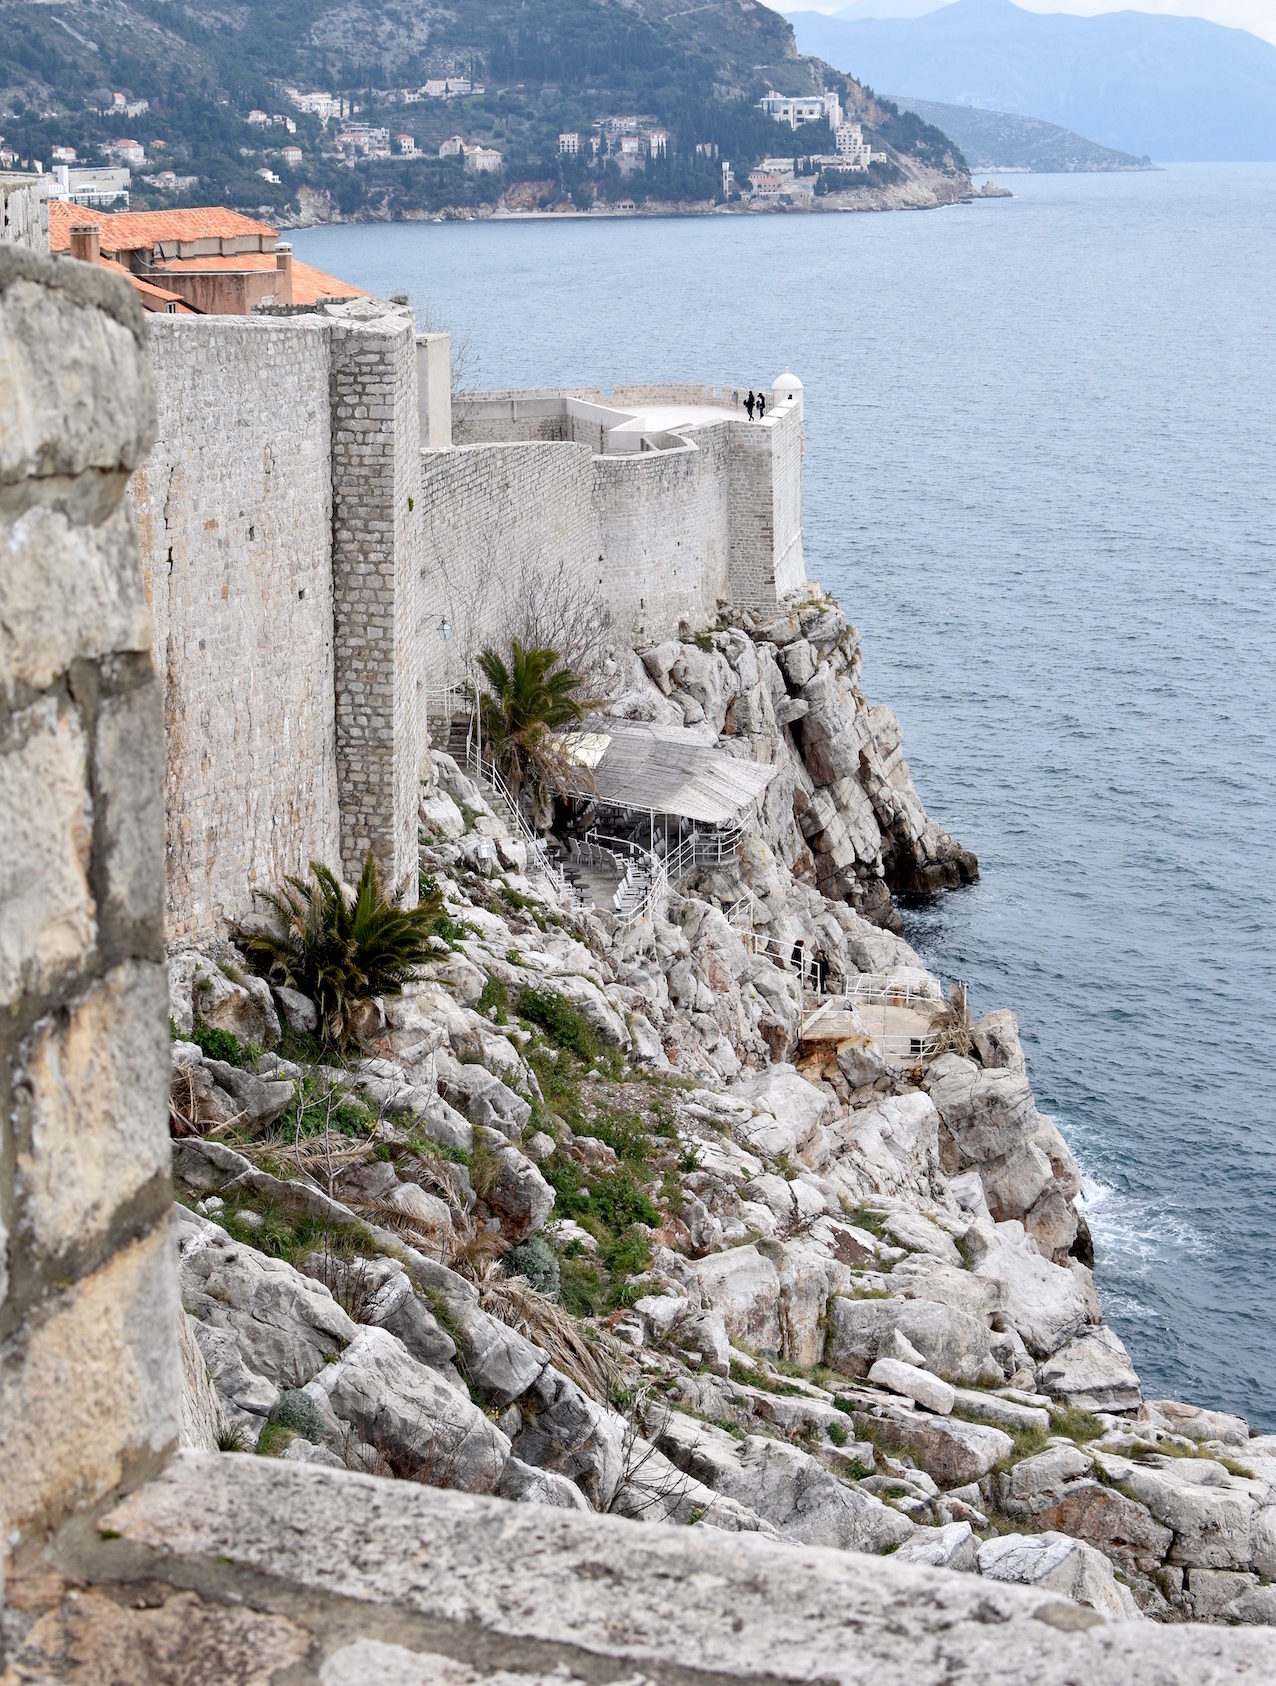 Winter visit to Dubrovnik, Croatia, where we saw the Buza Bar from the city wall